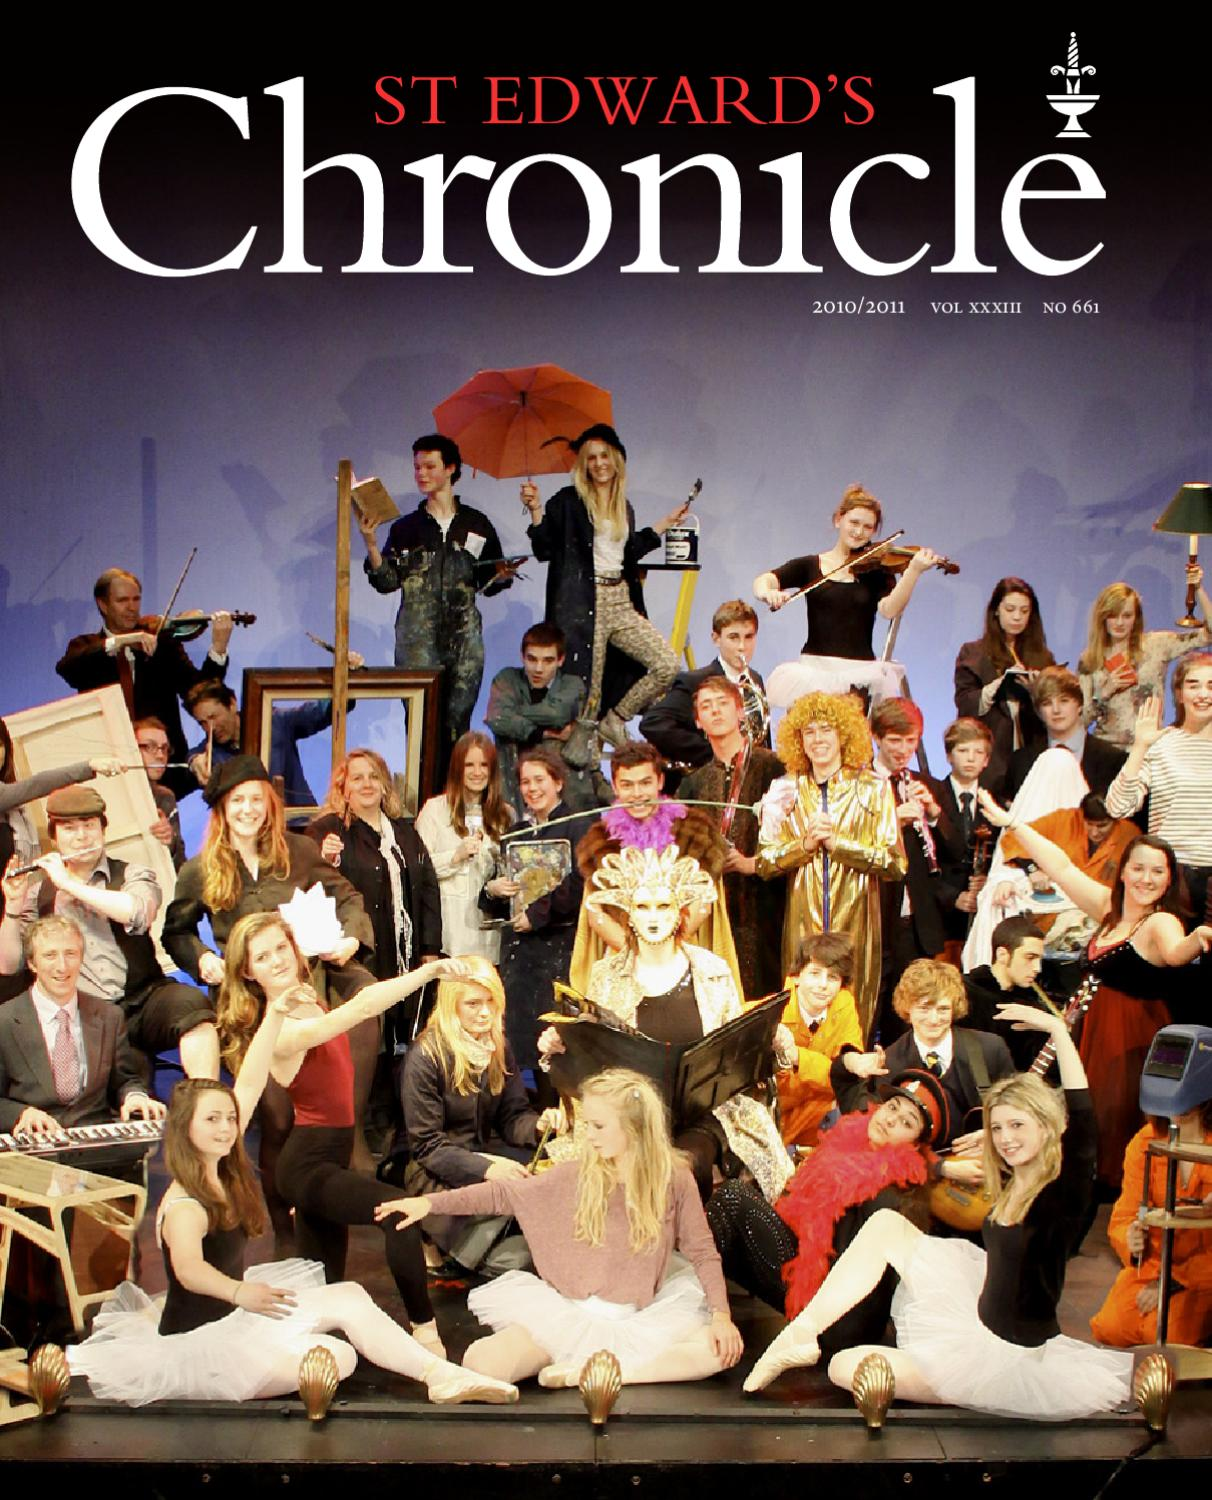 Chronicle 2010 2011 Part 2 By Pamela Keeley Butler Issuu Short Circuit From Left Cynthia Gibb Johnny Five 1988 Ctristar